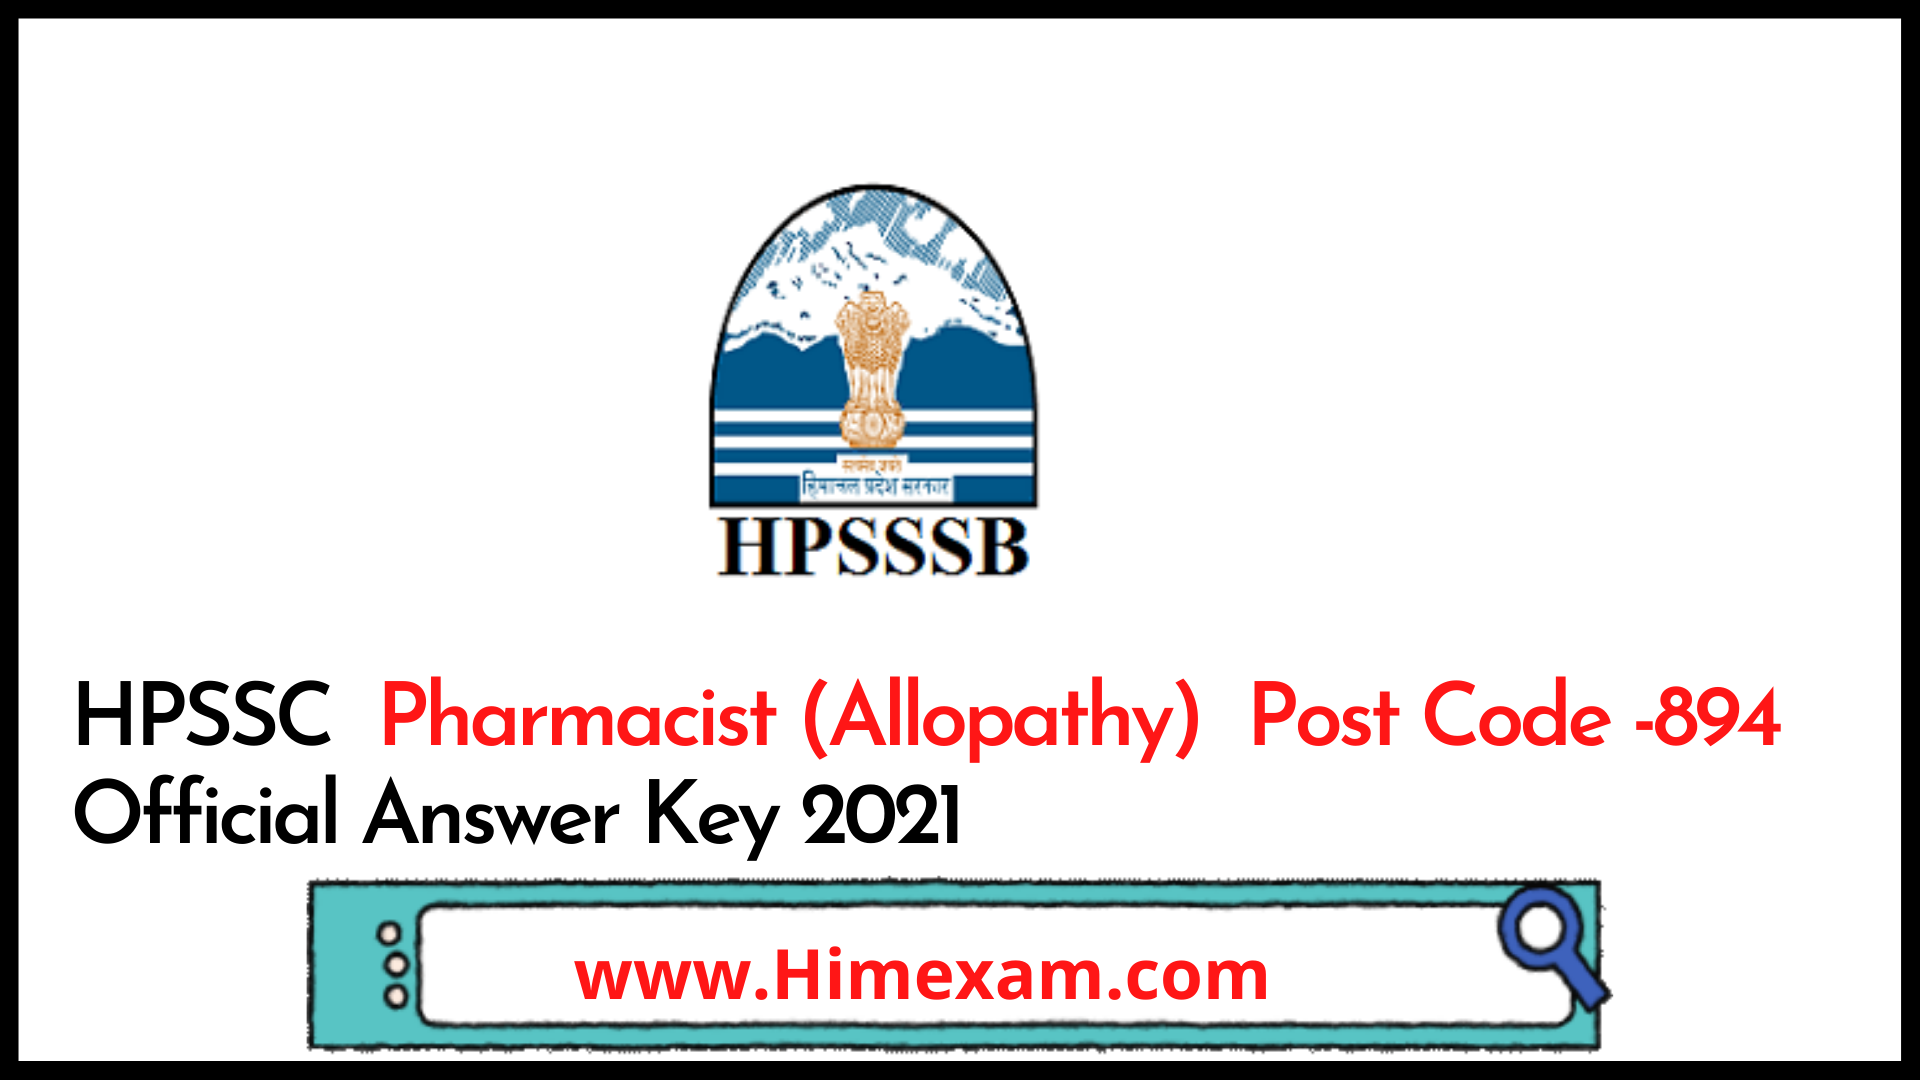 HPSSC  Pharmacist (Allopathy)  Post Code -894 Official Answer Key 2021